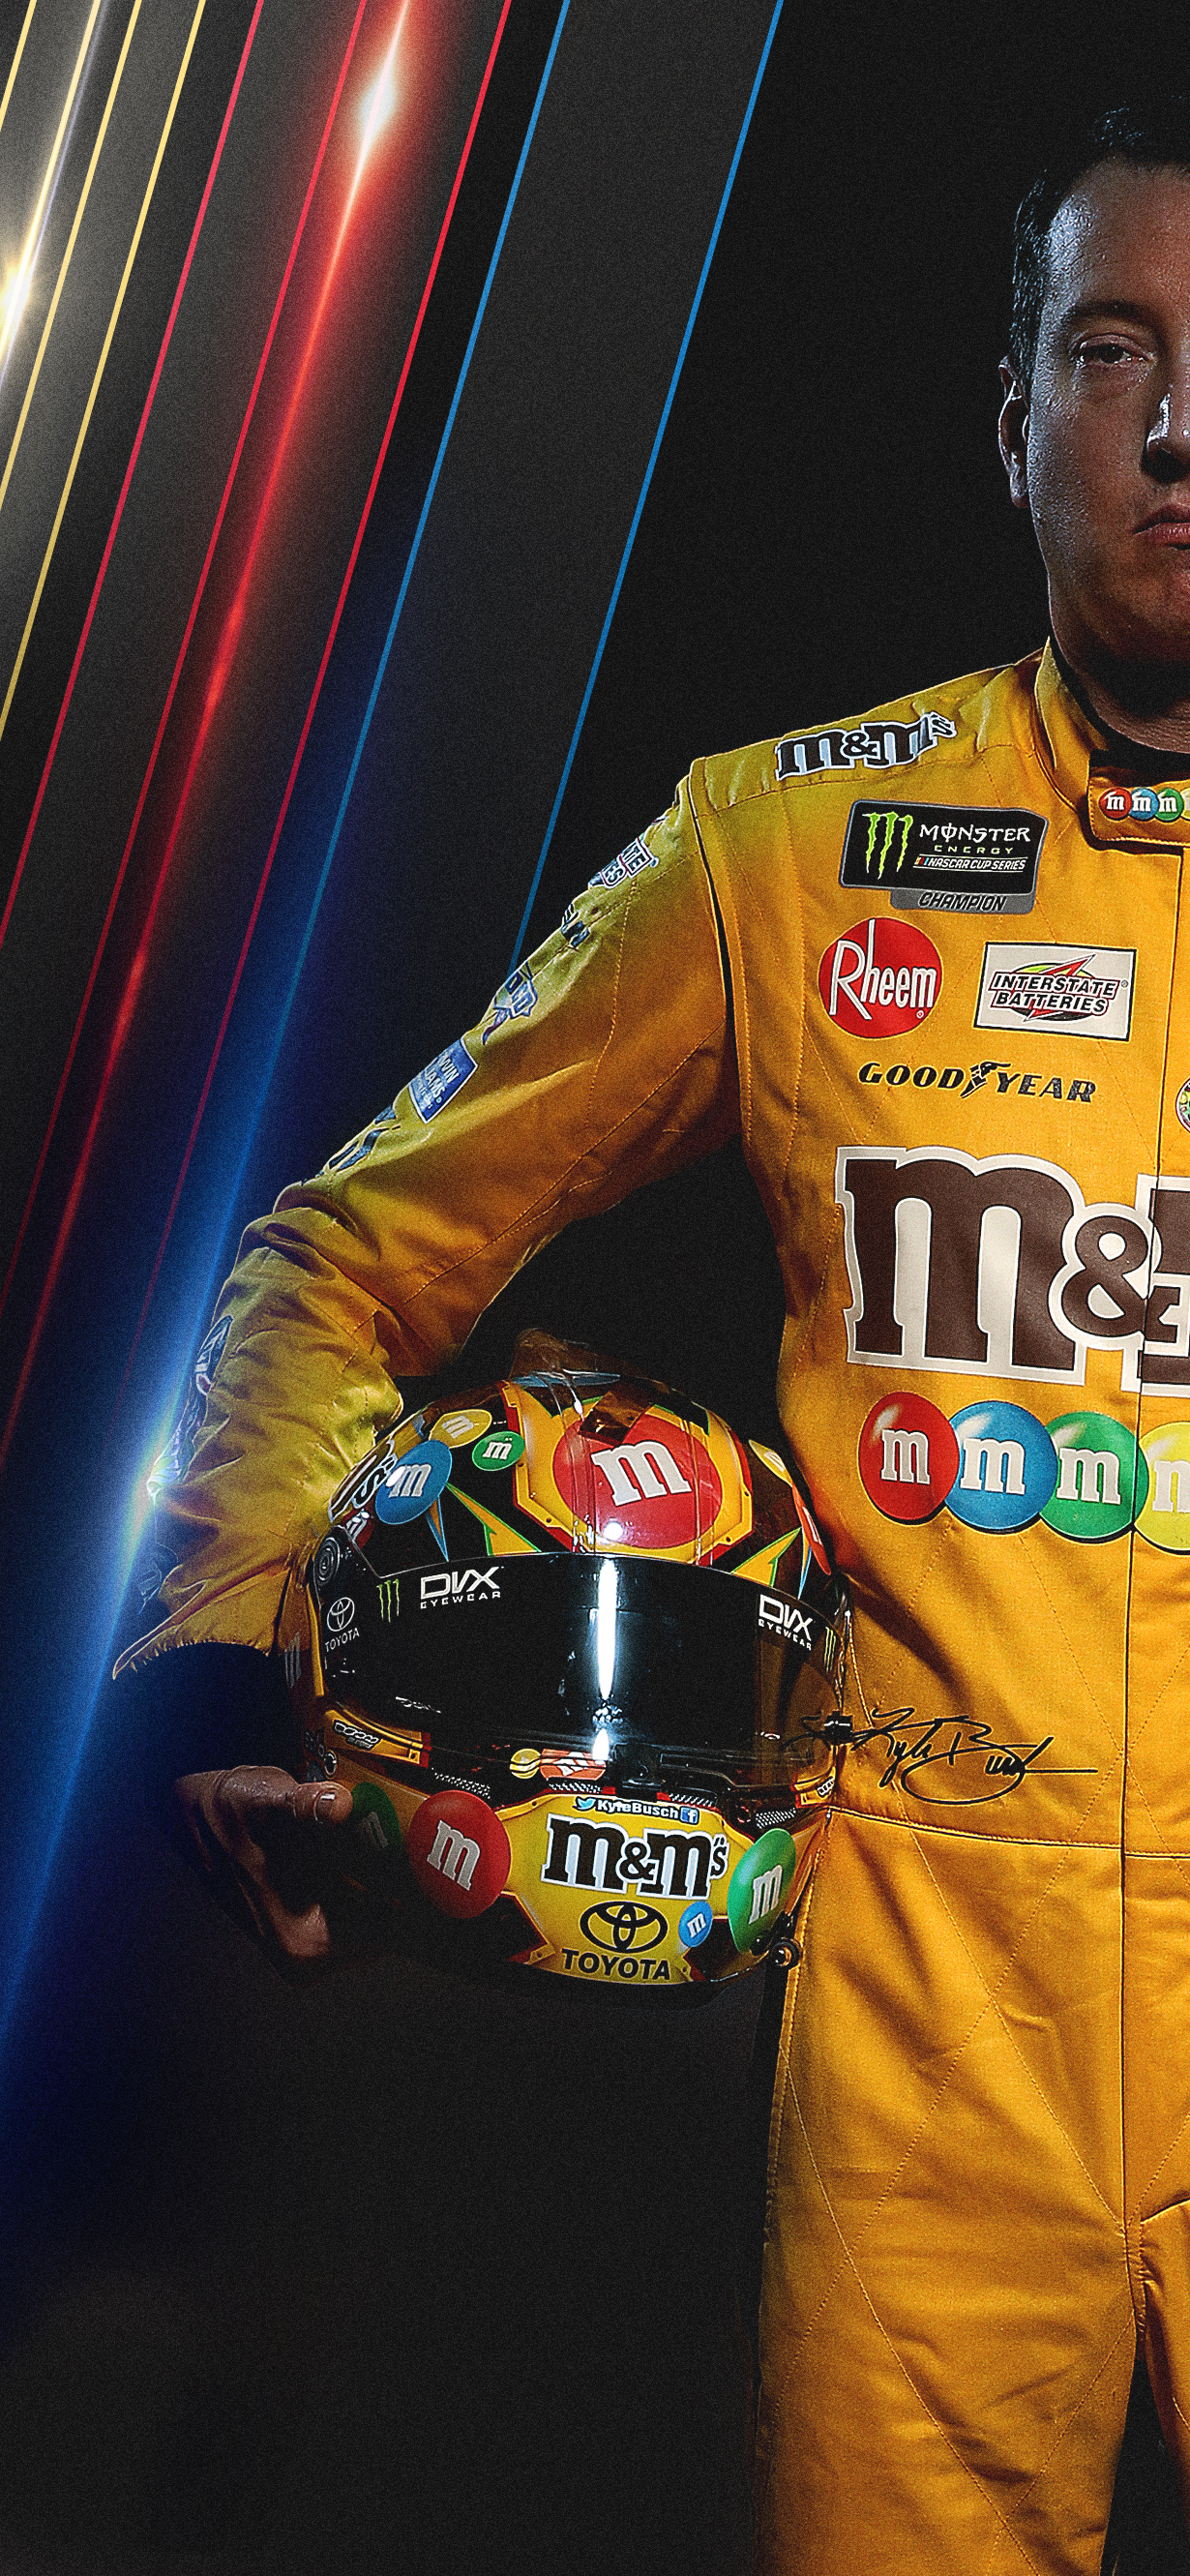 2019 nascar wallpapers official site of nascar - Wallpapers sites list ...